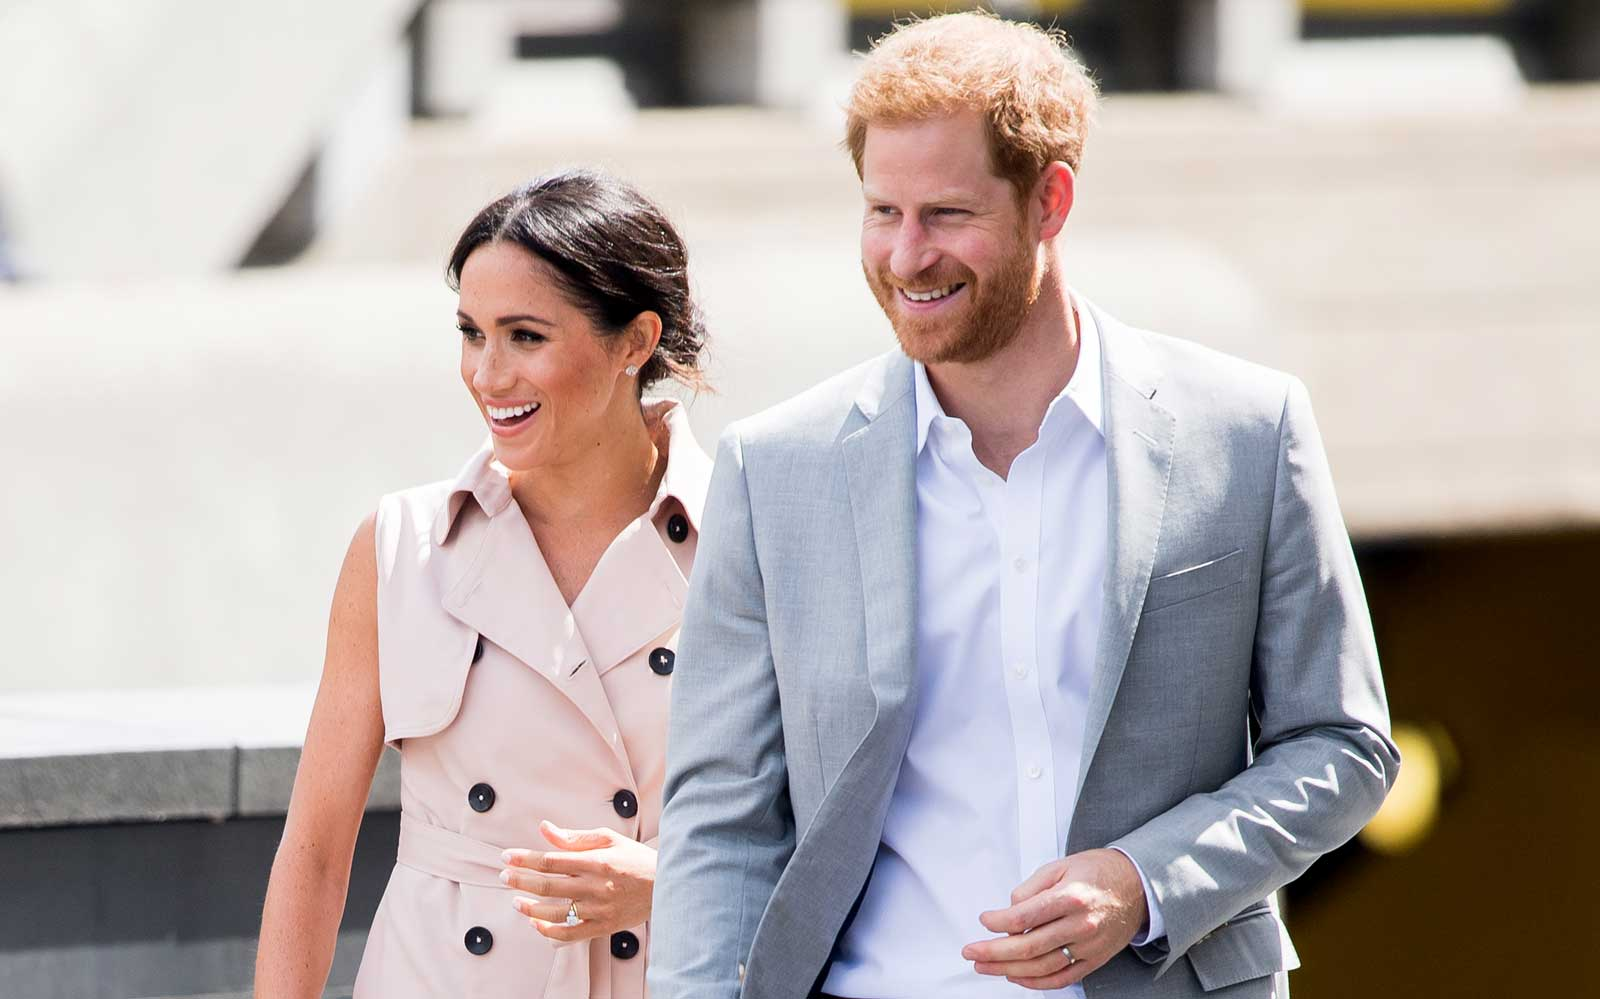 Prince Harry and Meghan Markle 'Fell in Love' With This Royal Cottage, so the Queen Gave It to Them